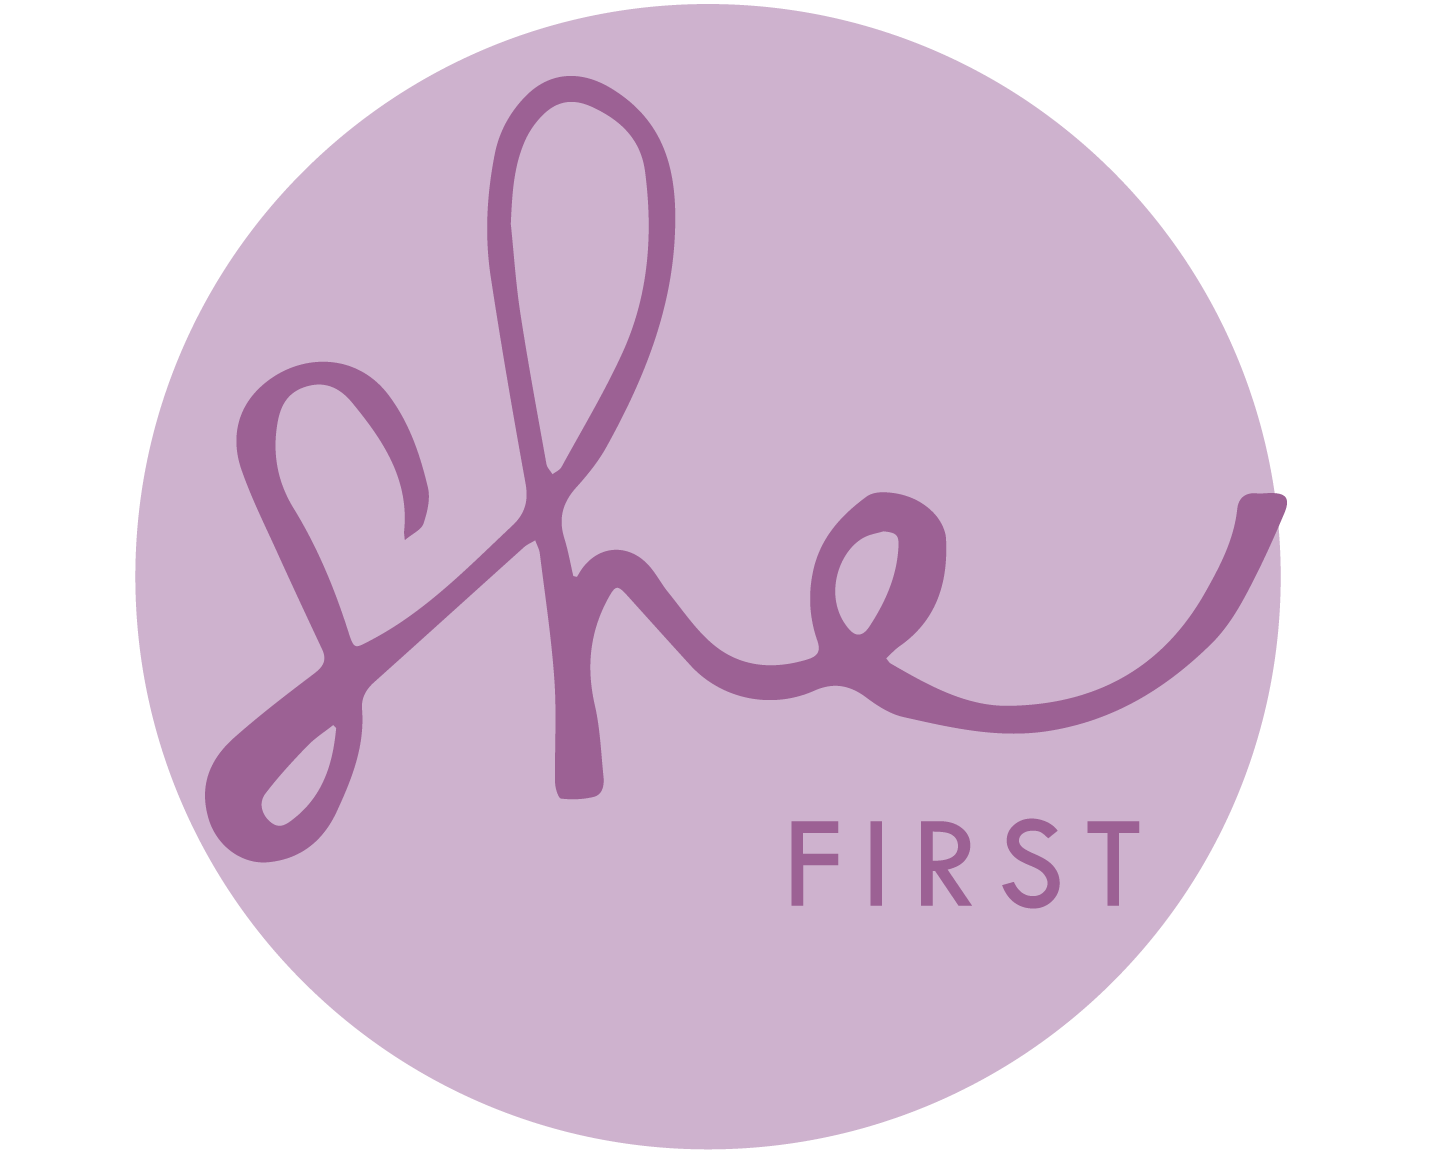 The SheFirst Project